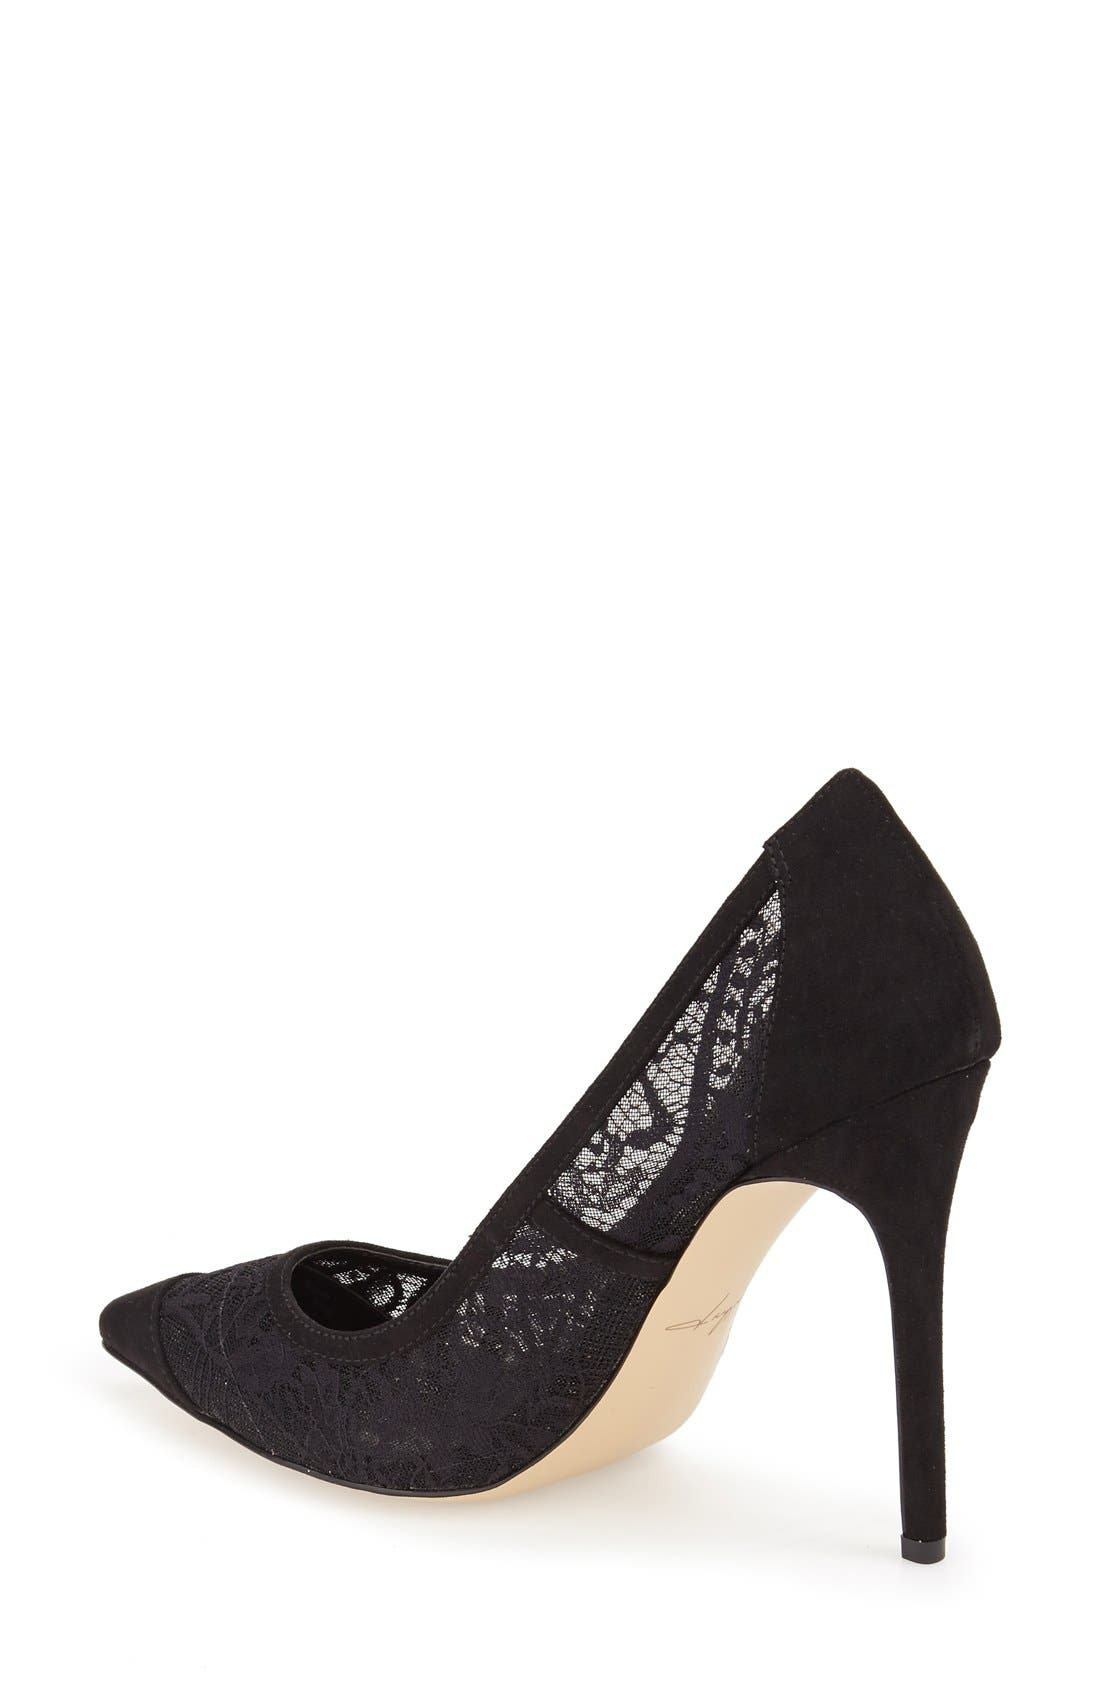 by Zendaya 'Annabelle' Pointy Toe Pump,                             Alternate thumbnail 2, color,                             Black Lace Fabric